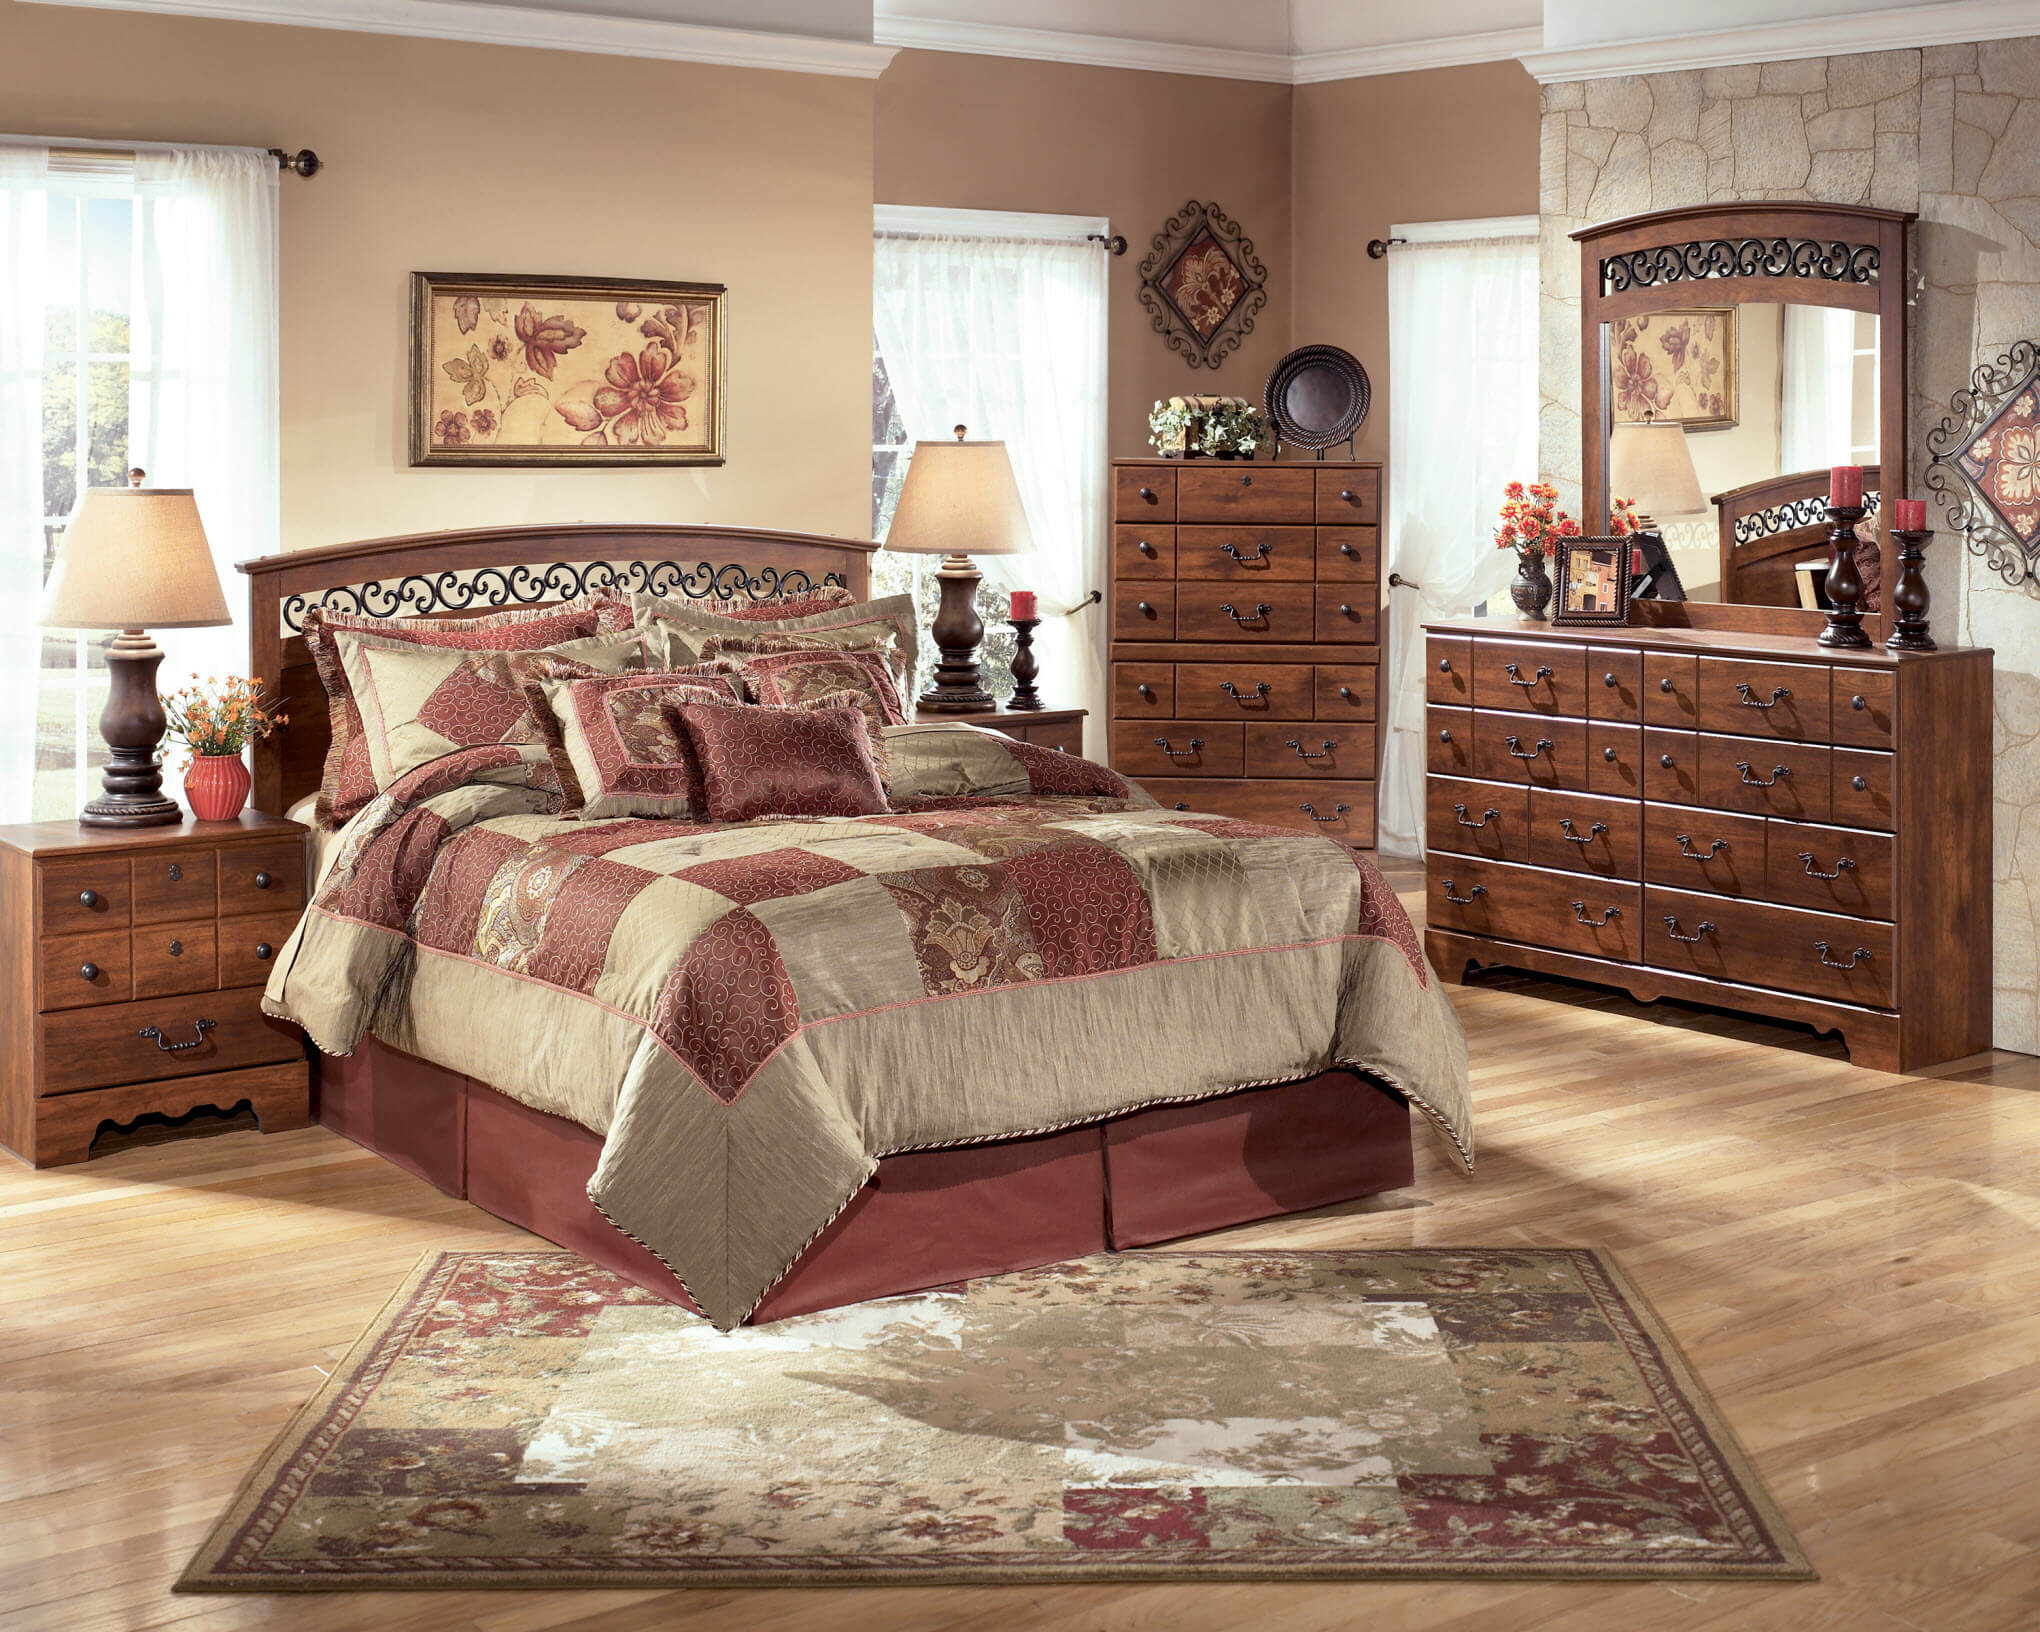 Timberline Ashley Bedroom Set Bedroom Furniture Sets